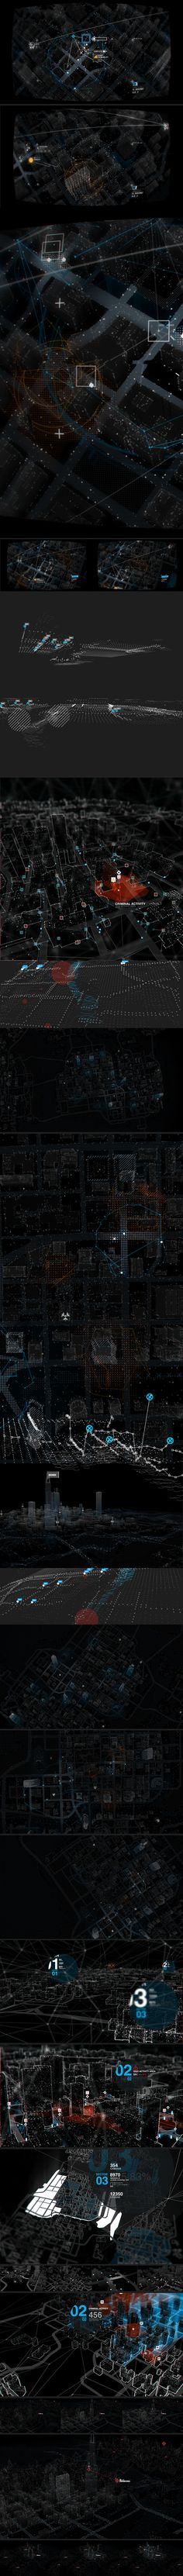 WATCH_DOGS : The Grid by Timothe Lapetite, via Behance